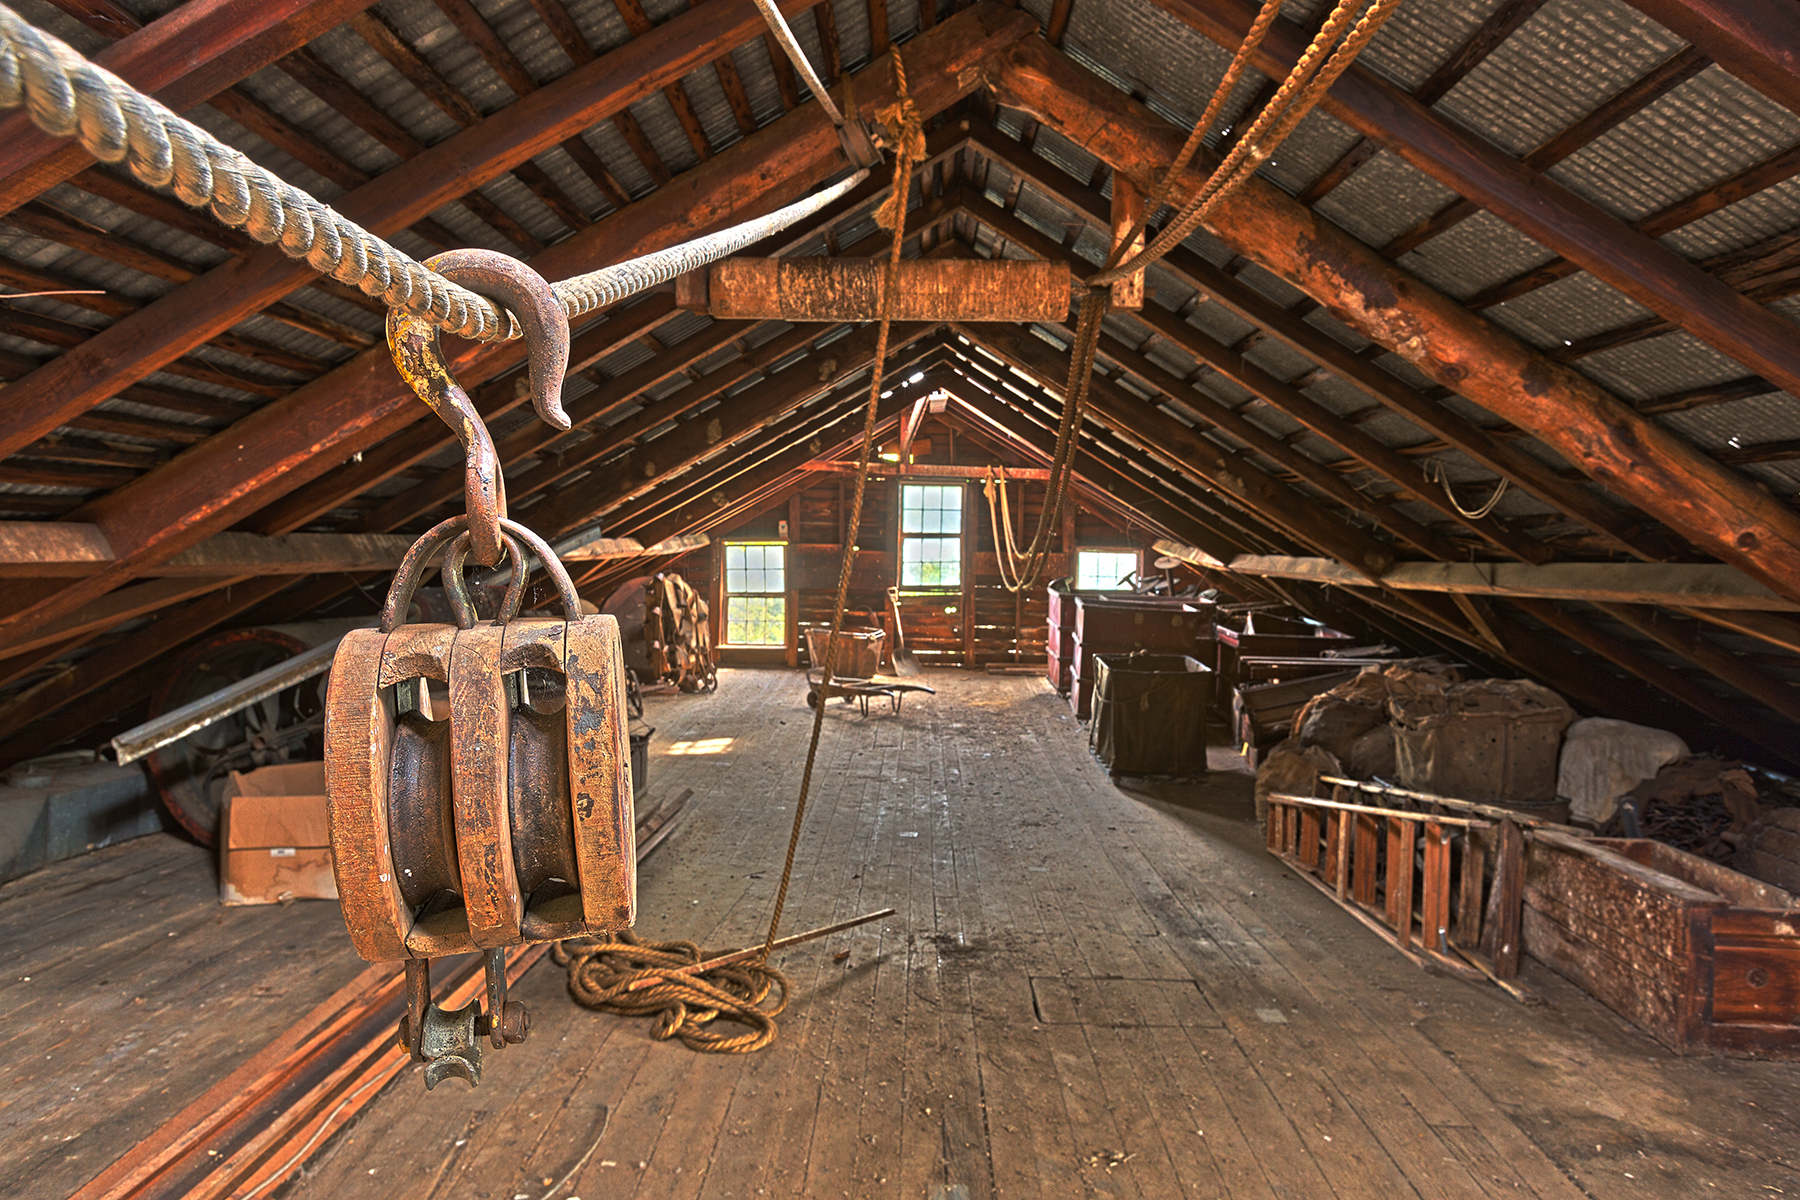 Waterside woolen mill - hdr photo